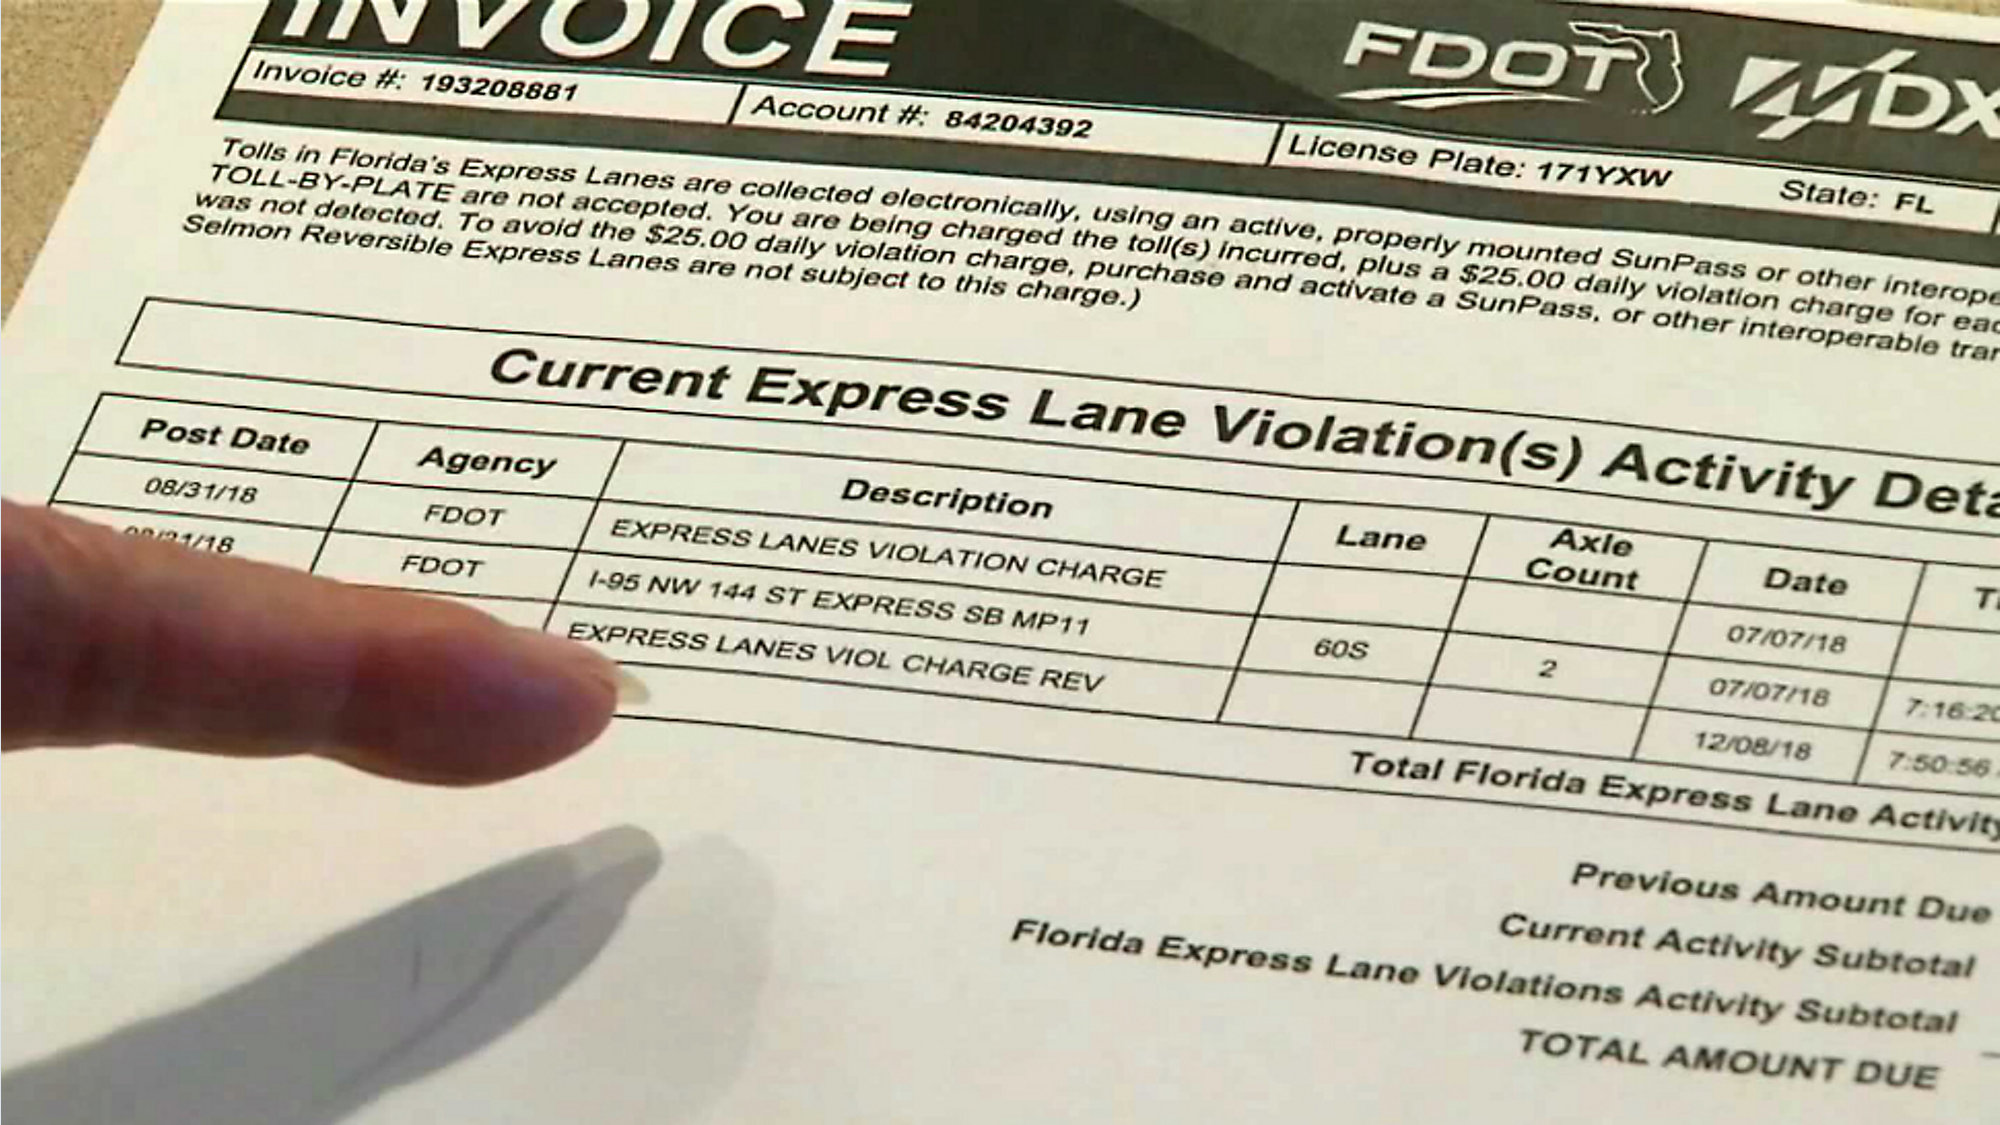 Watchdog: Got an Errant SunPass bill? You're Not Alone